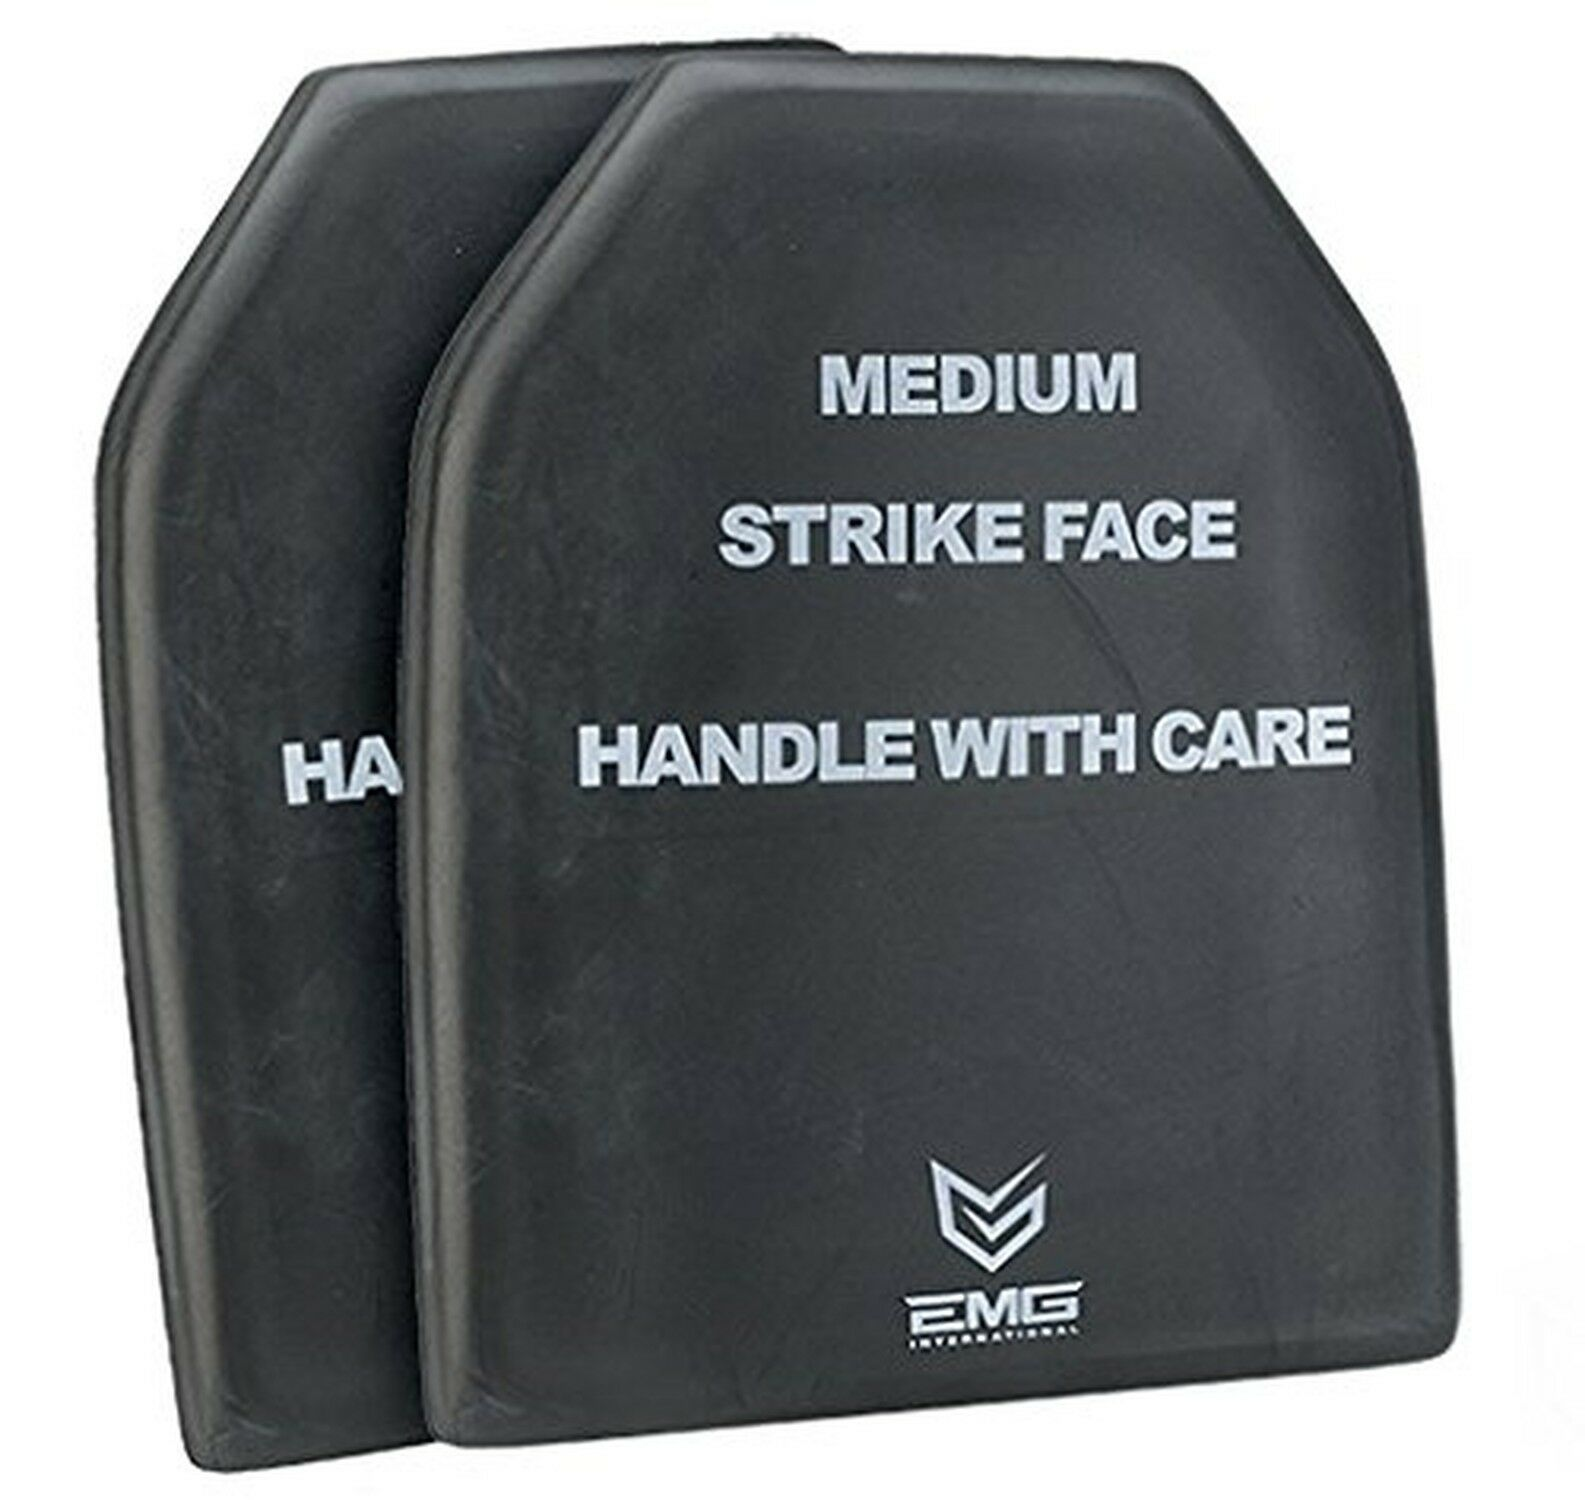 EMG Tactical Dummy Training SAPI Plate Insert Size Medium (One  Pair)  quality first consumers first